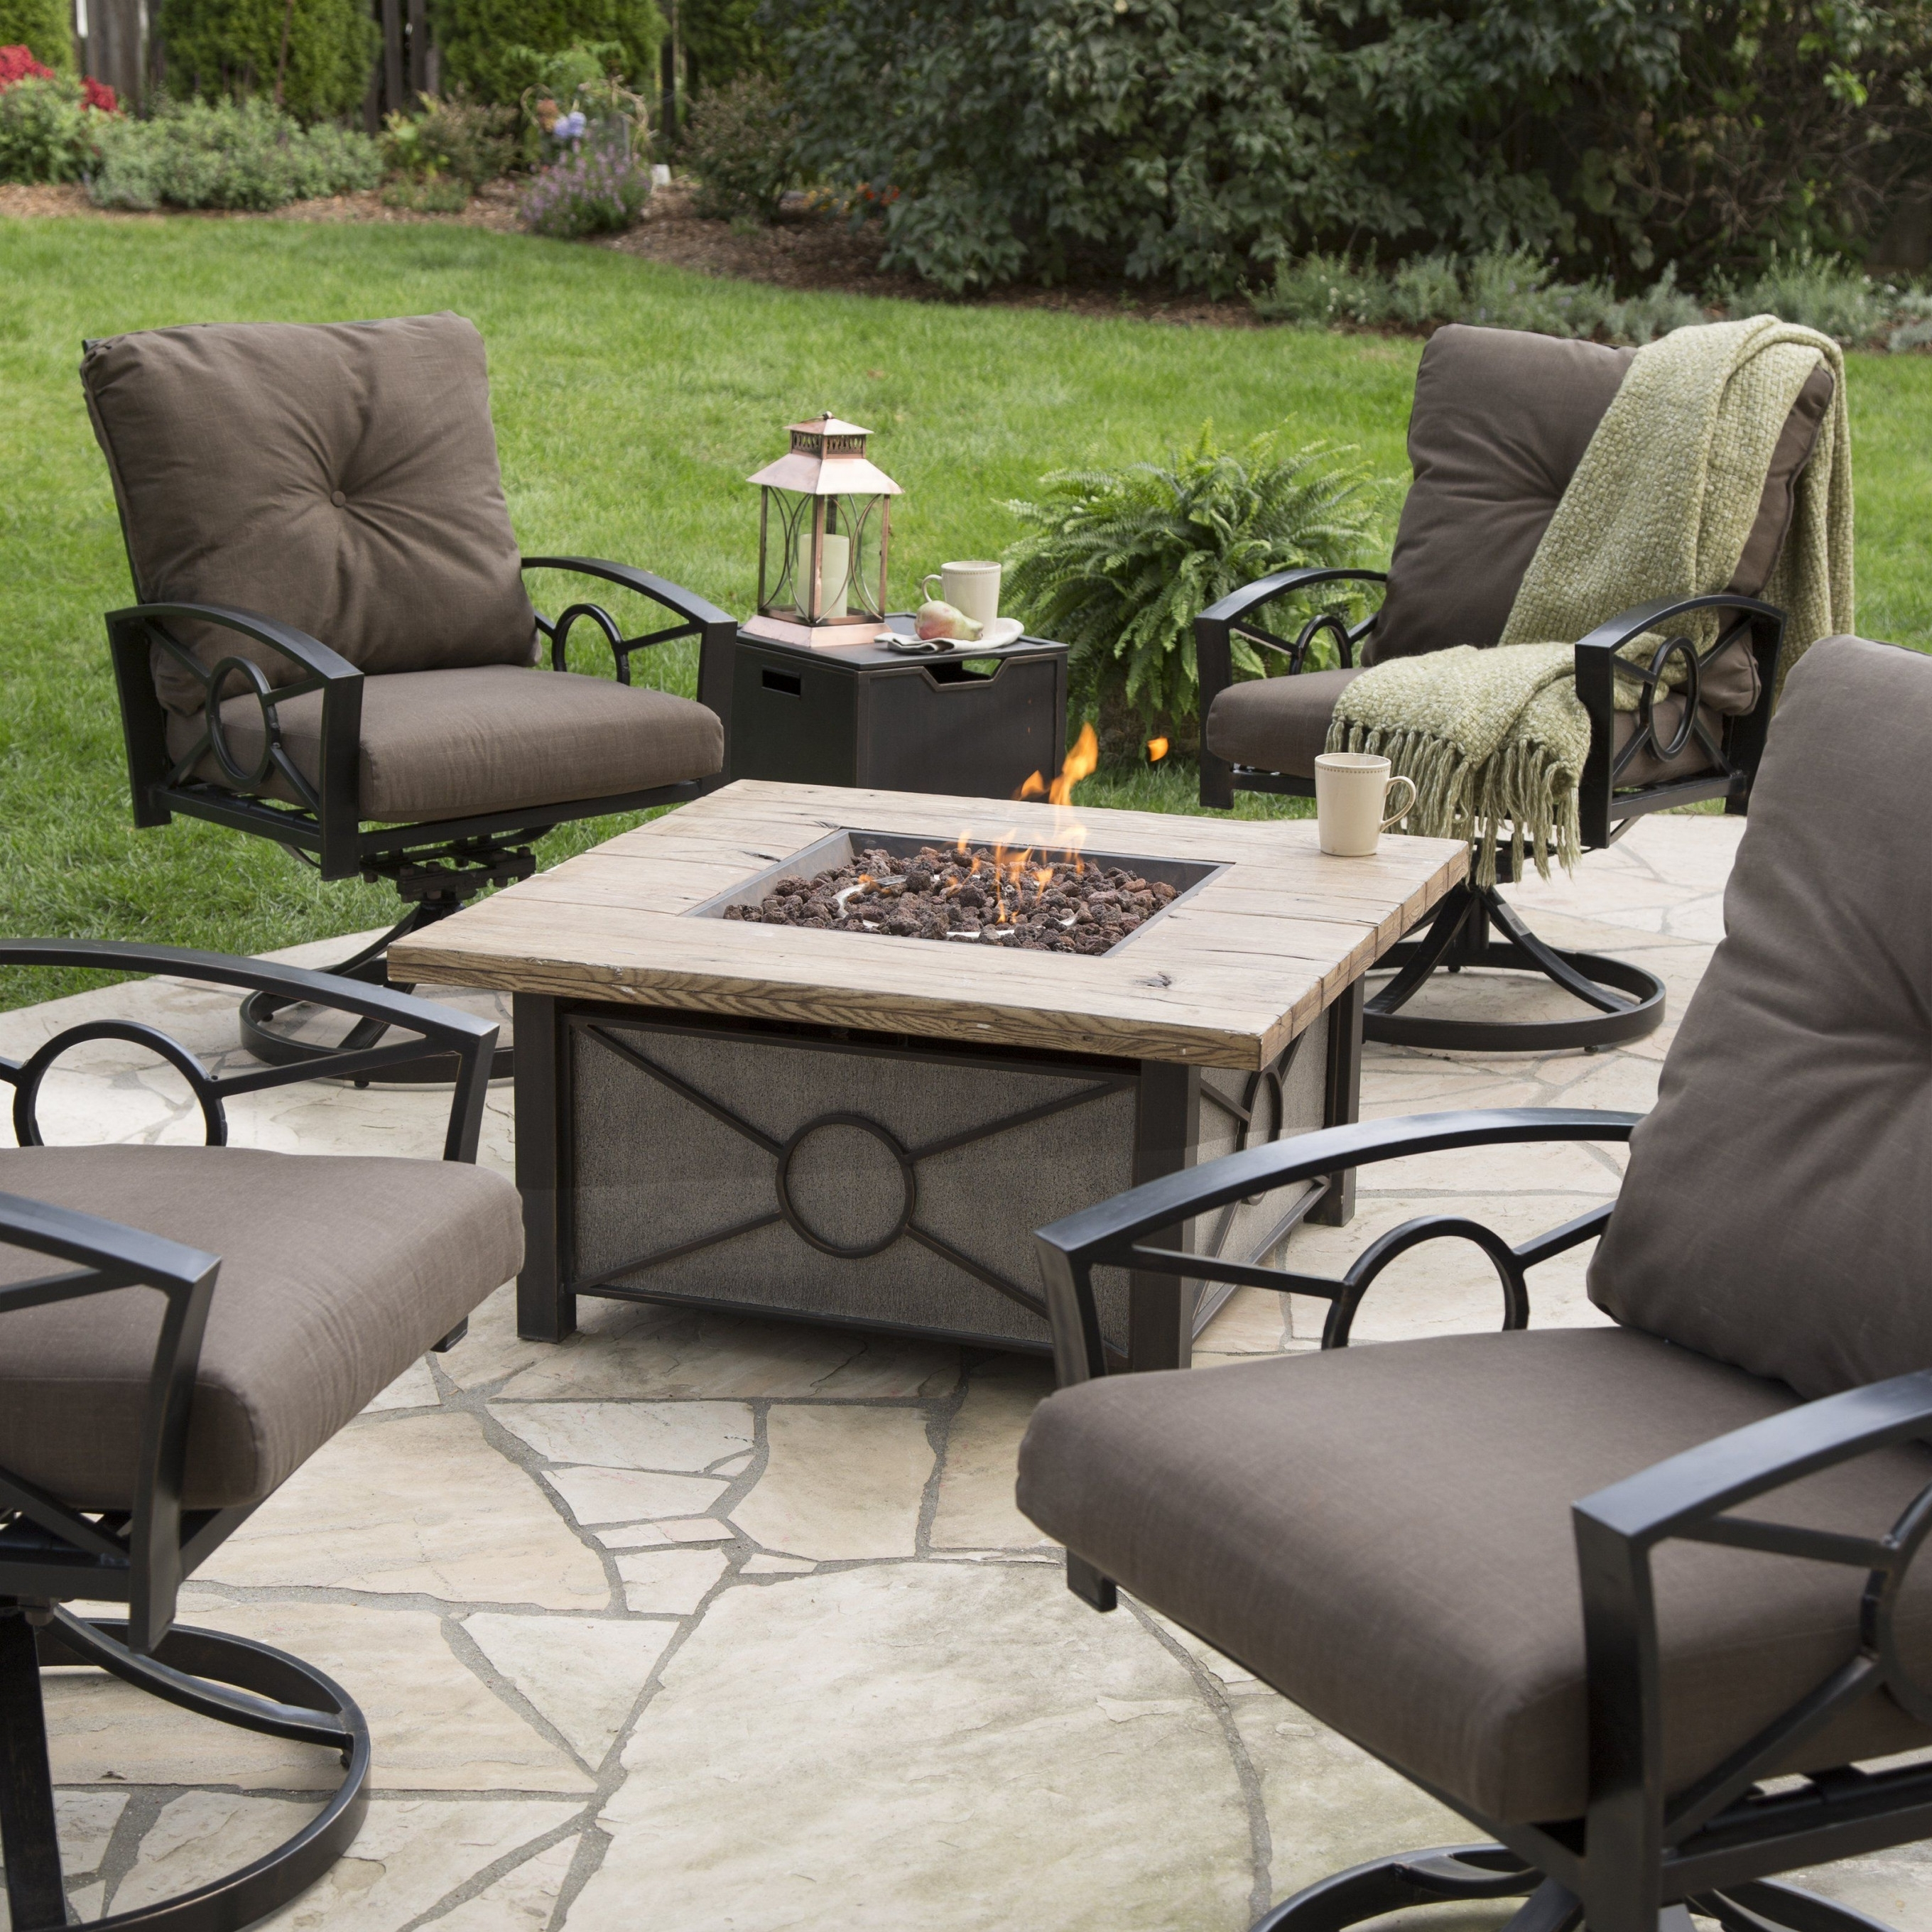 Hayneedle Patio Conversation Sets Throughout Fashionable Valuable Gas Fire Pit Conversation Set Red Ember Dillon Table Chat (View 10 of 20)